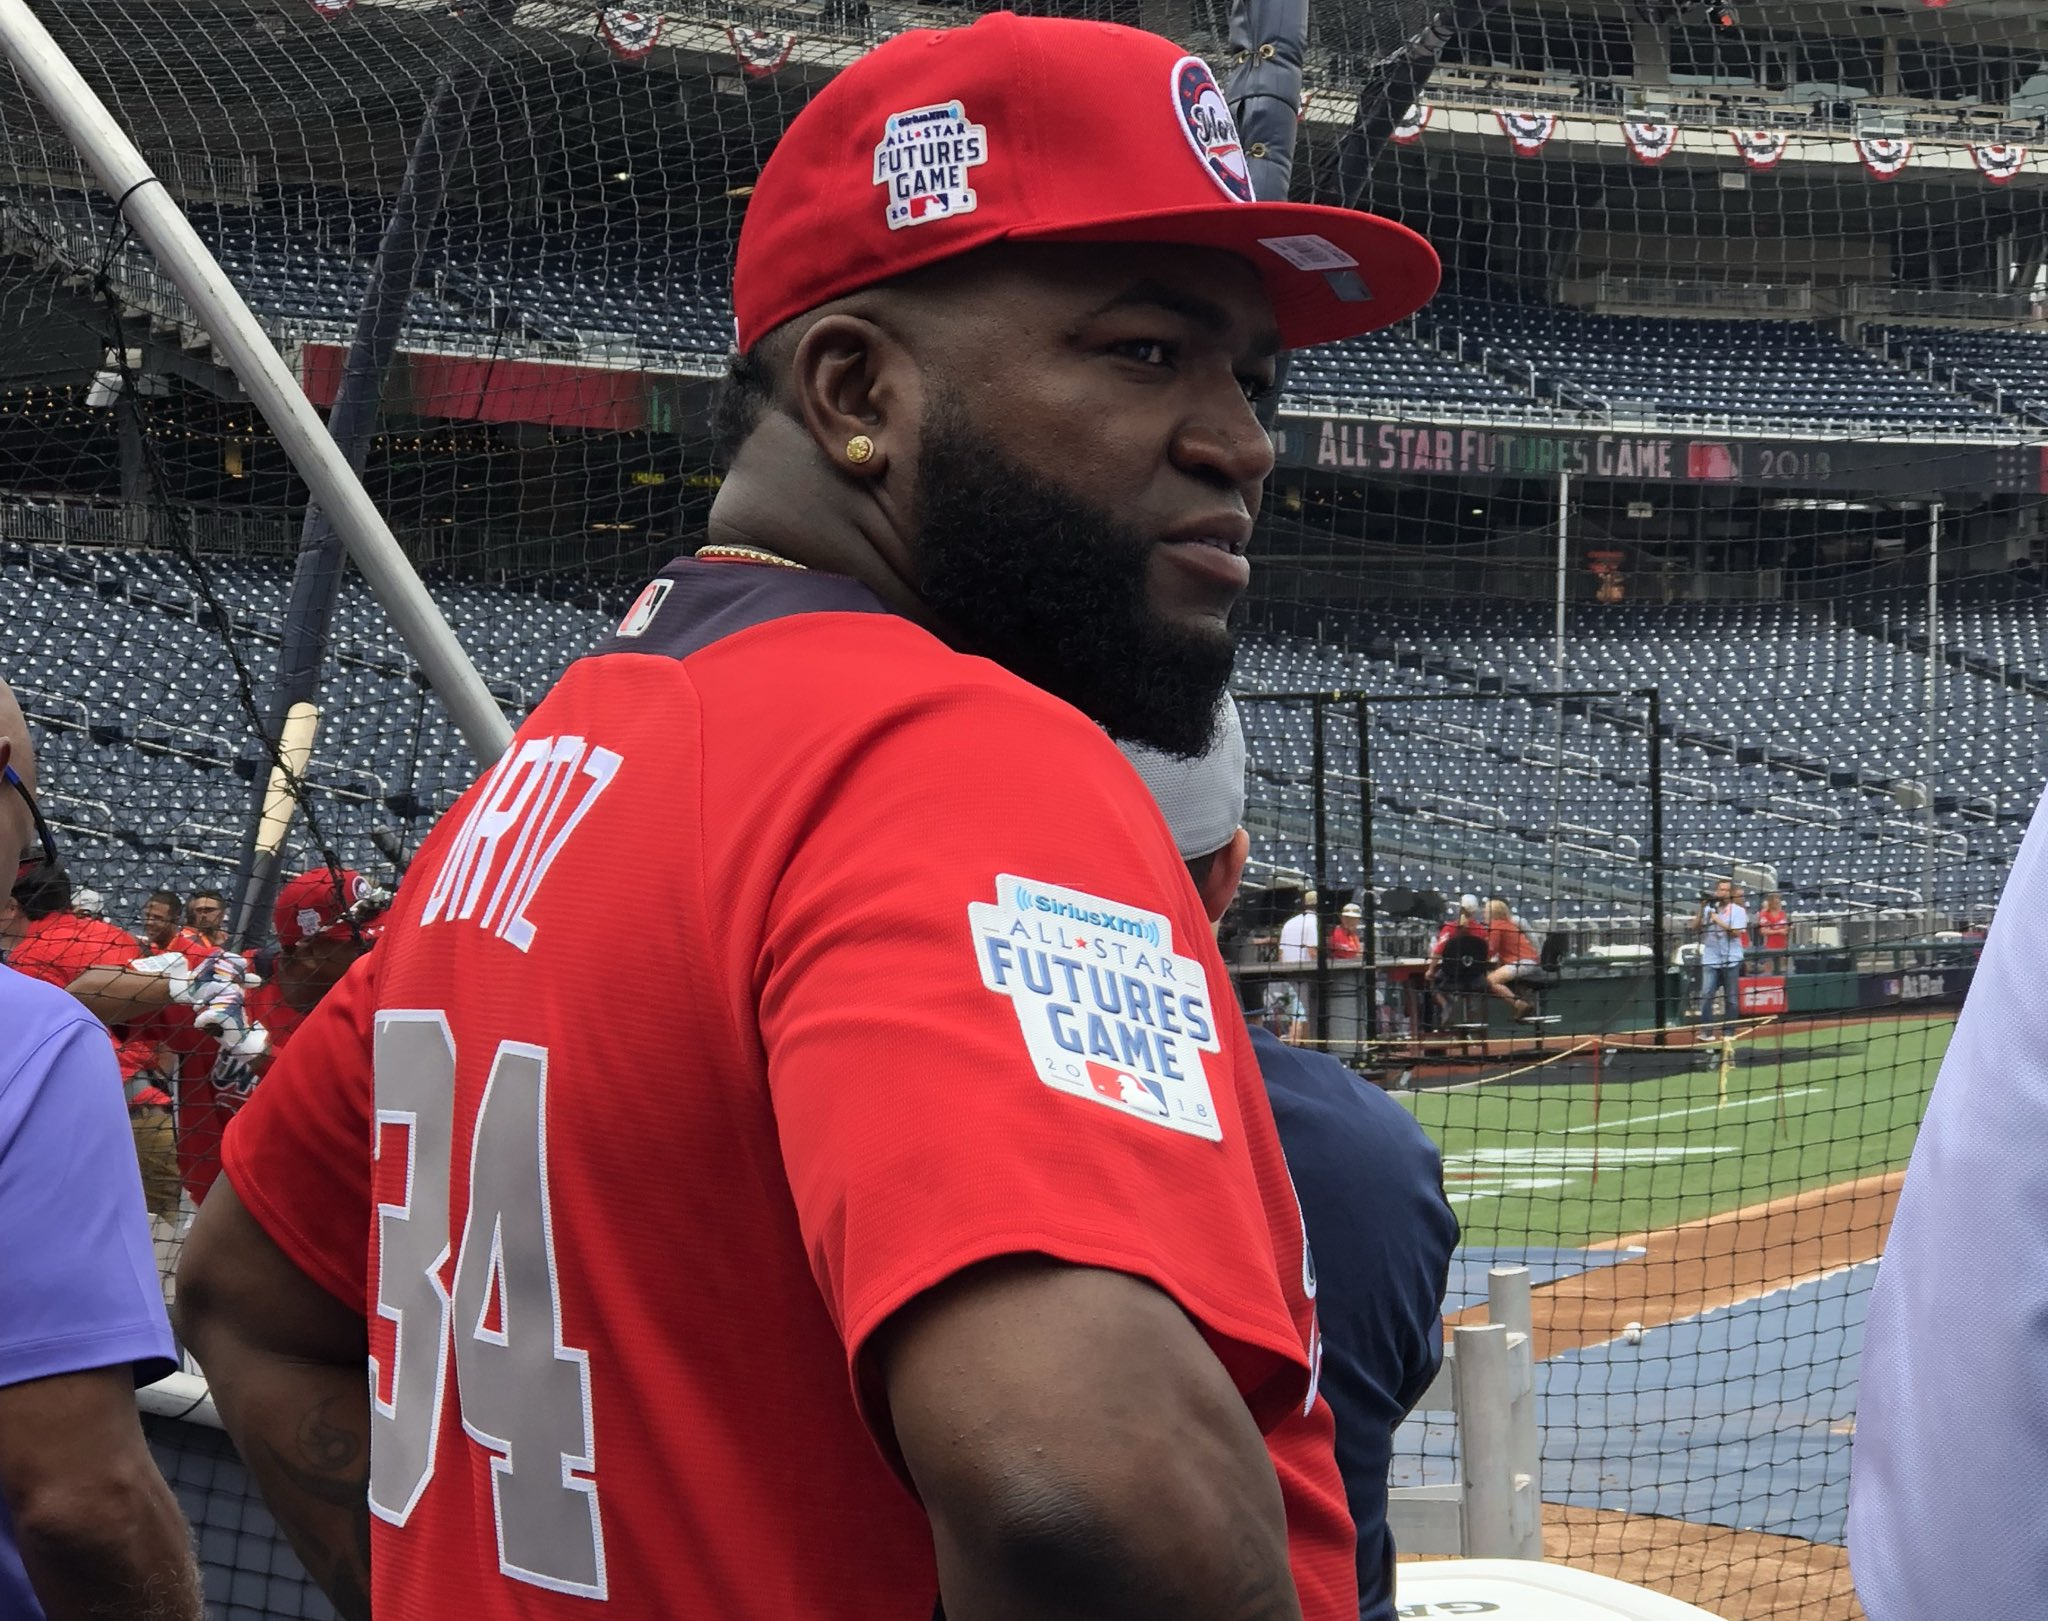 34 in red. Managing (not playing) for the World Team today. #FuturesGame https://t.co/fJTKfO94J0